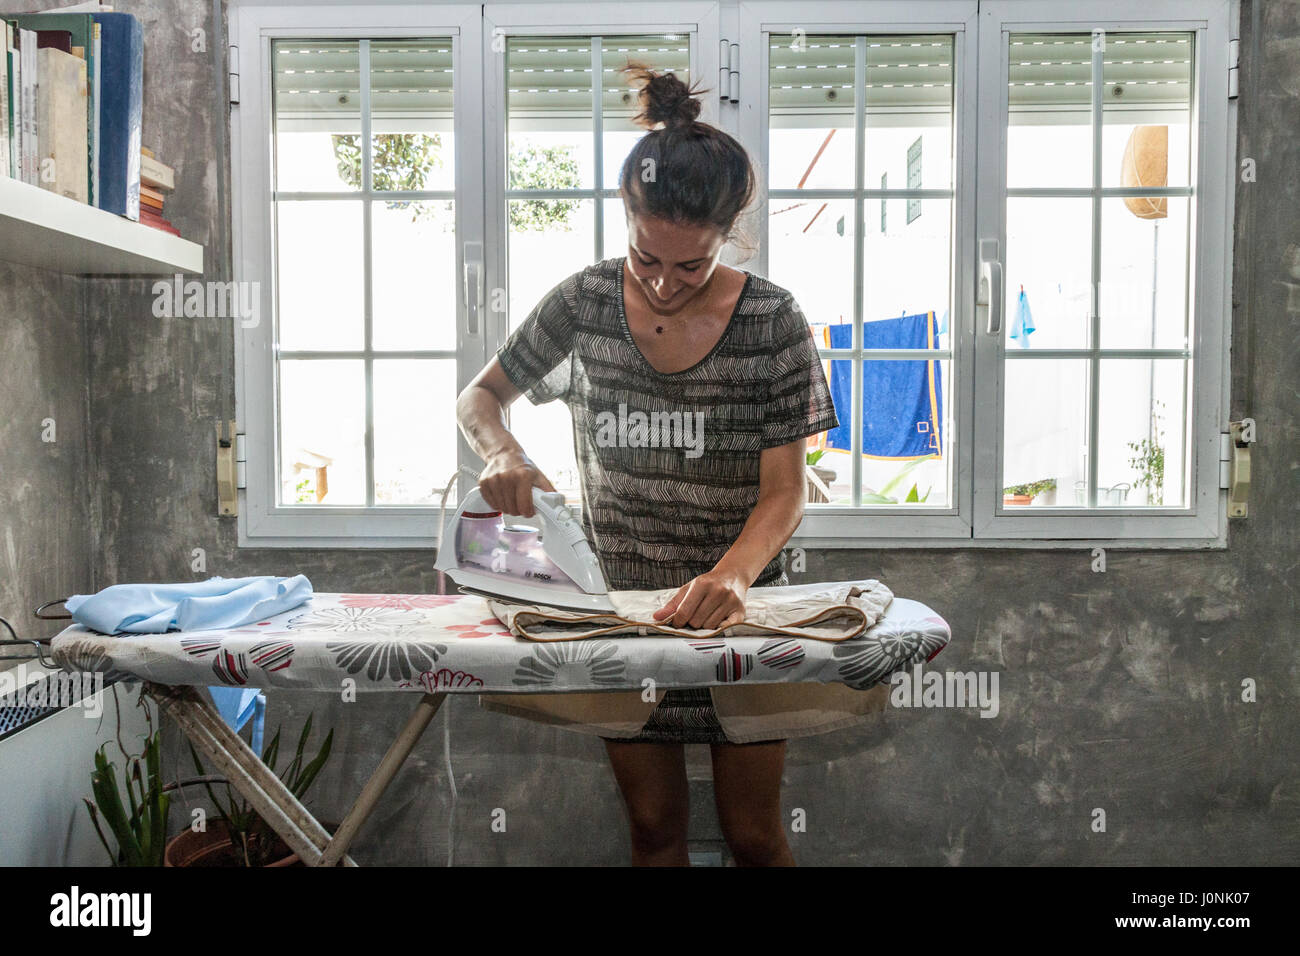 Home chores. One beautiful young woman ironing clothes at home, confortly dressed, hair tied up in a bun. Stock Photo